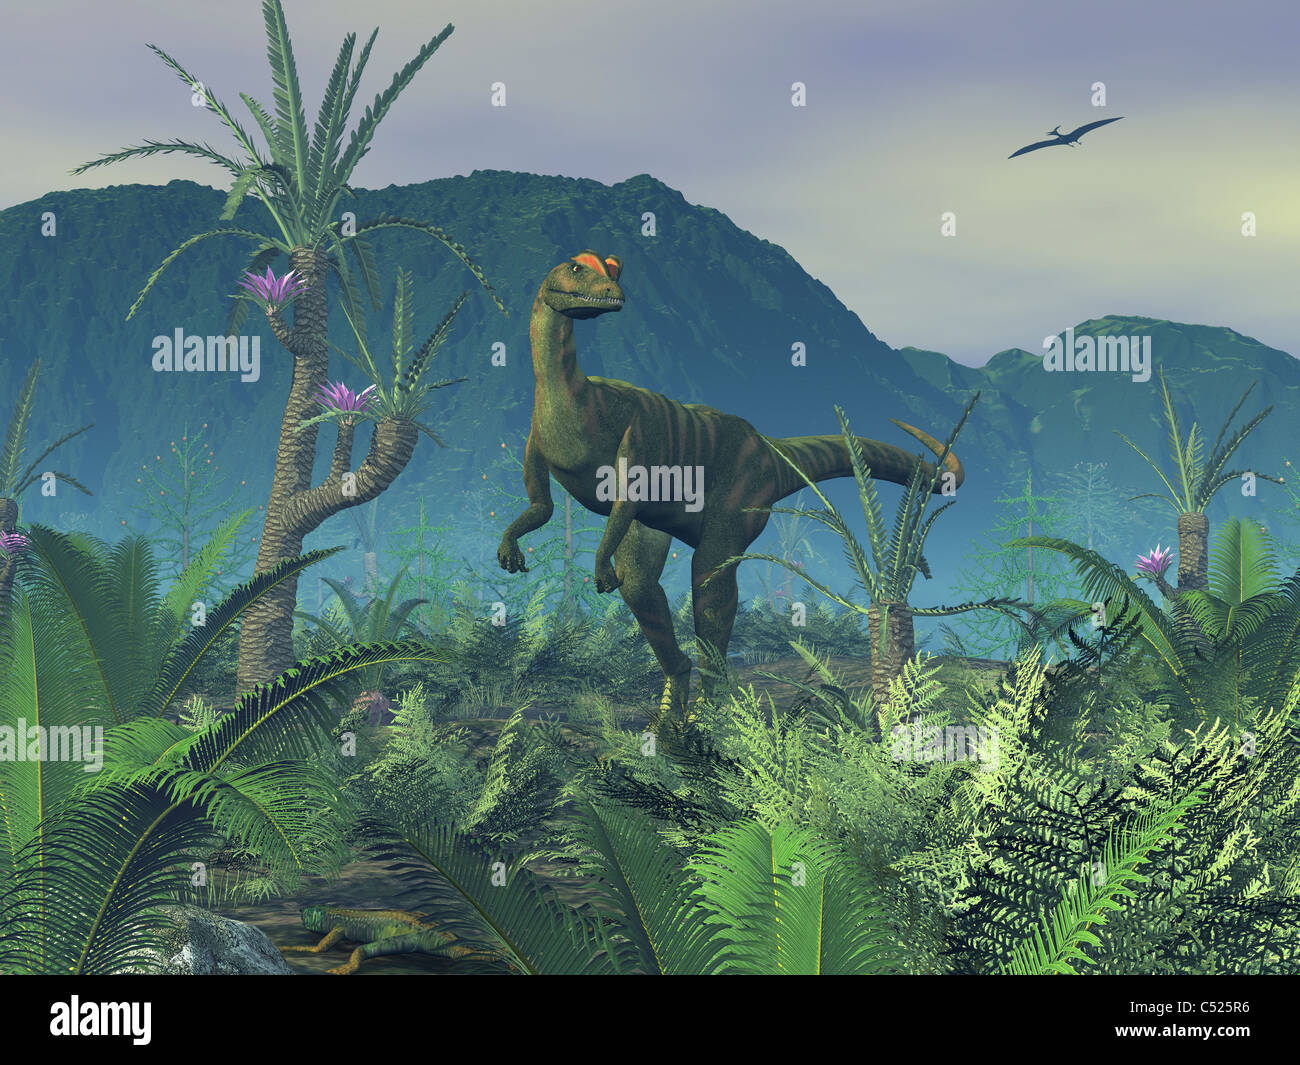 A colorful adult male Dilophosaurus explores a hilltop. - Stock Image